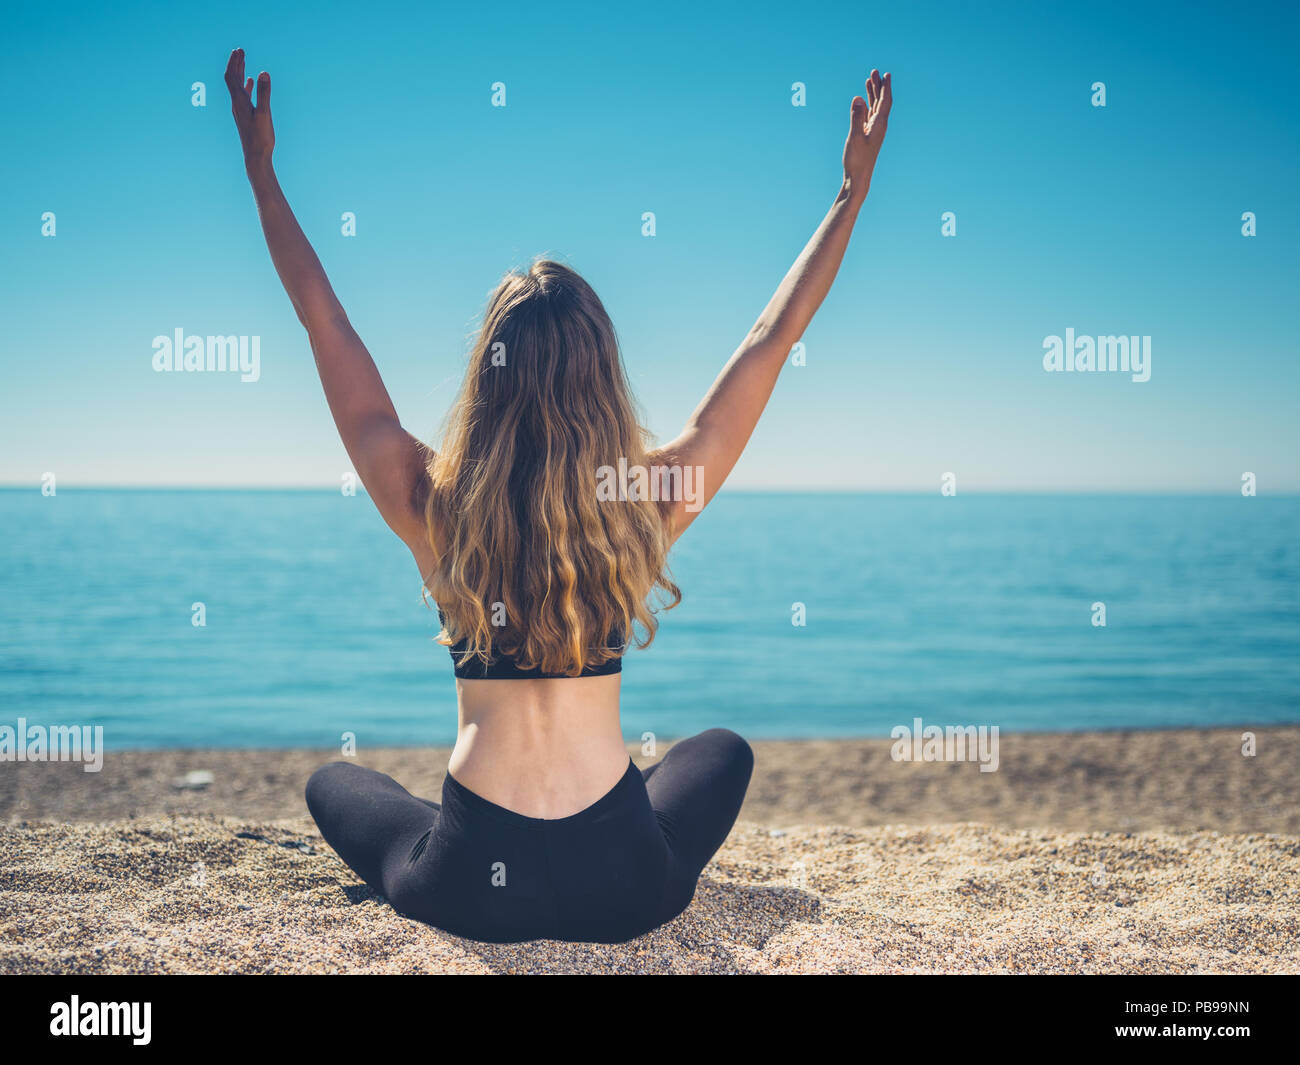 A young woman is sitting on the beach with her arms raised up in the air - Stock Image